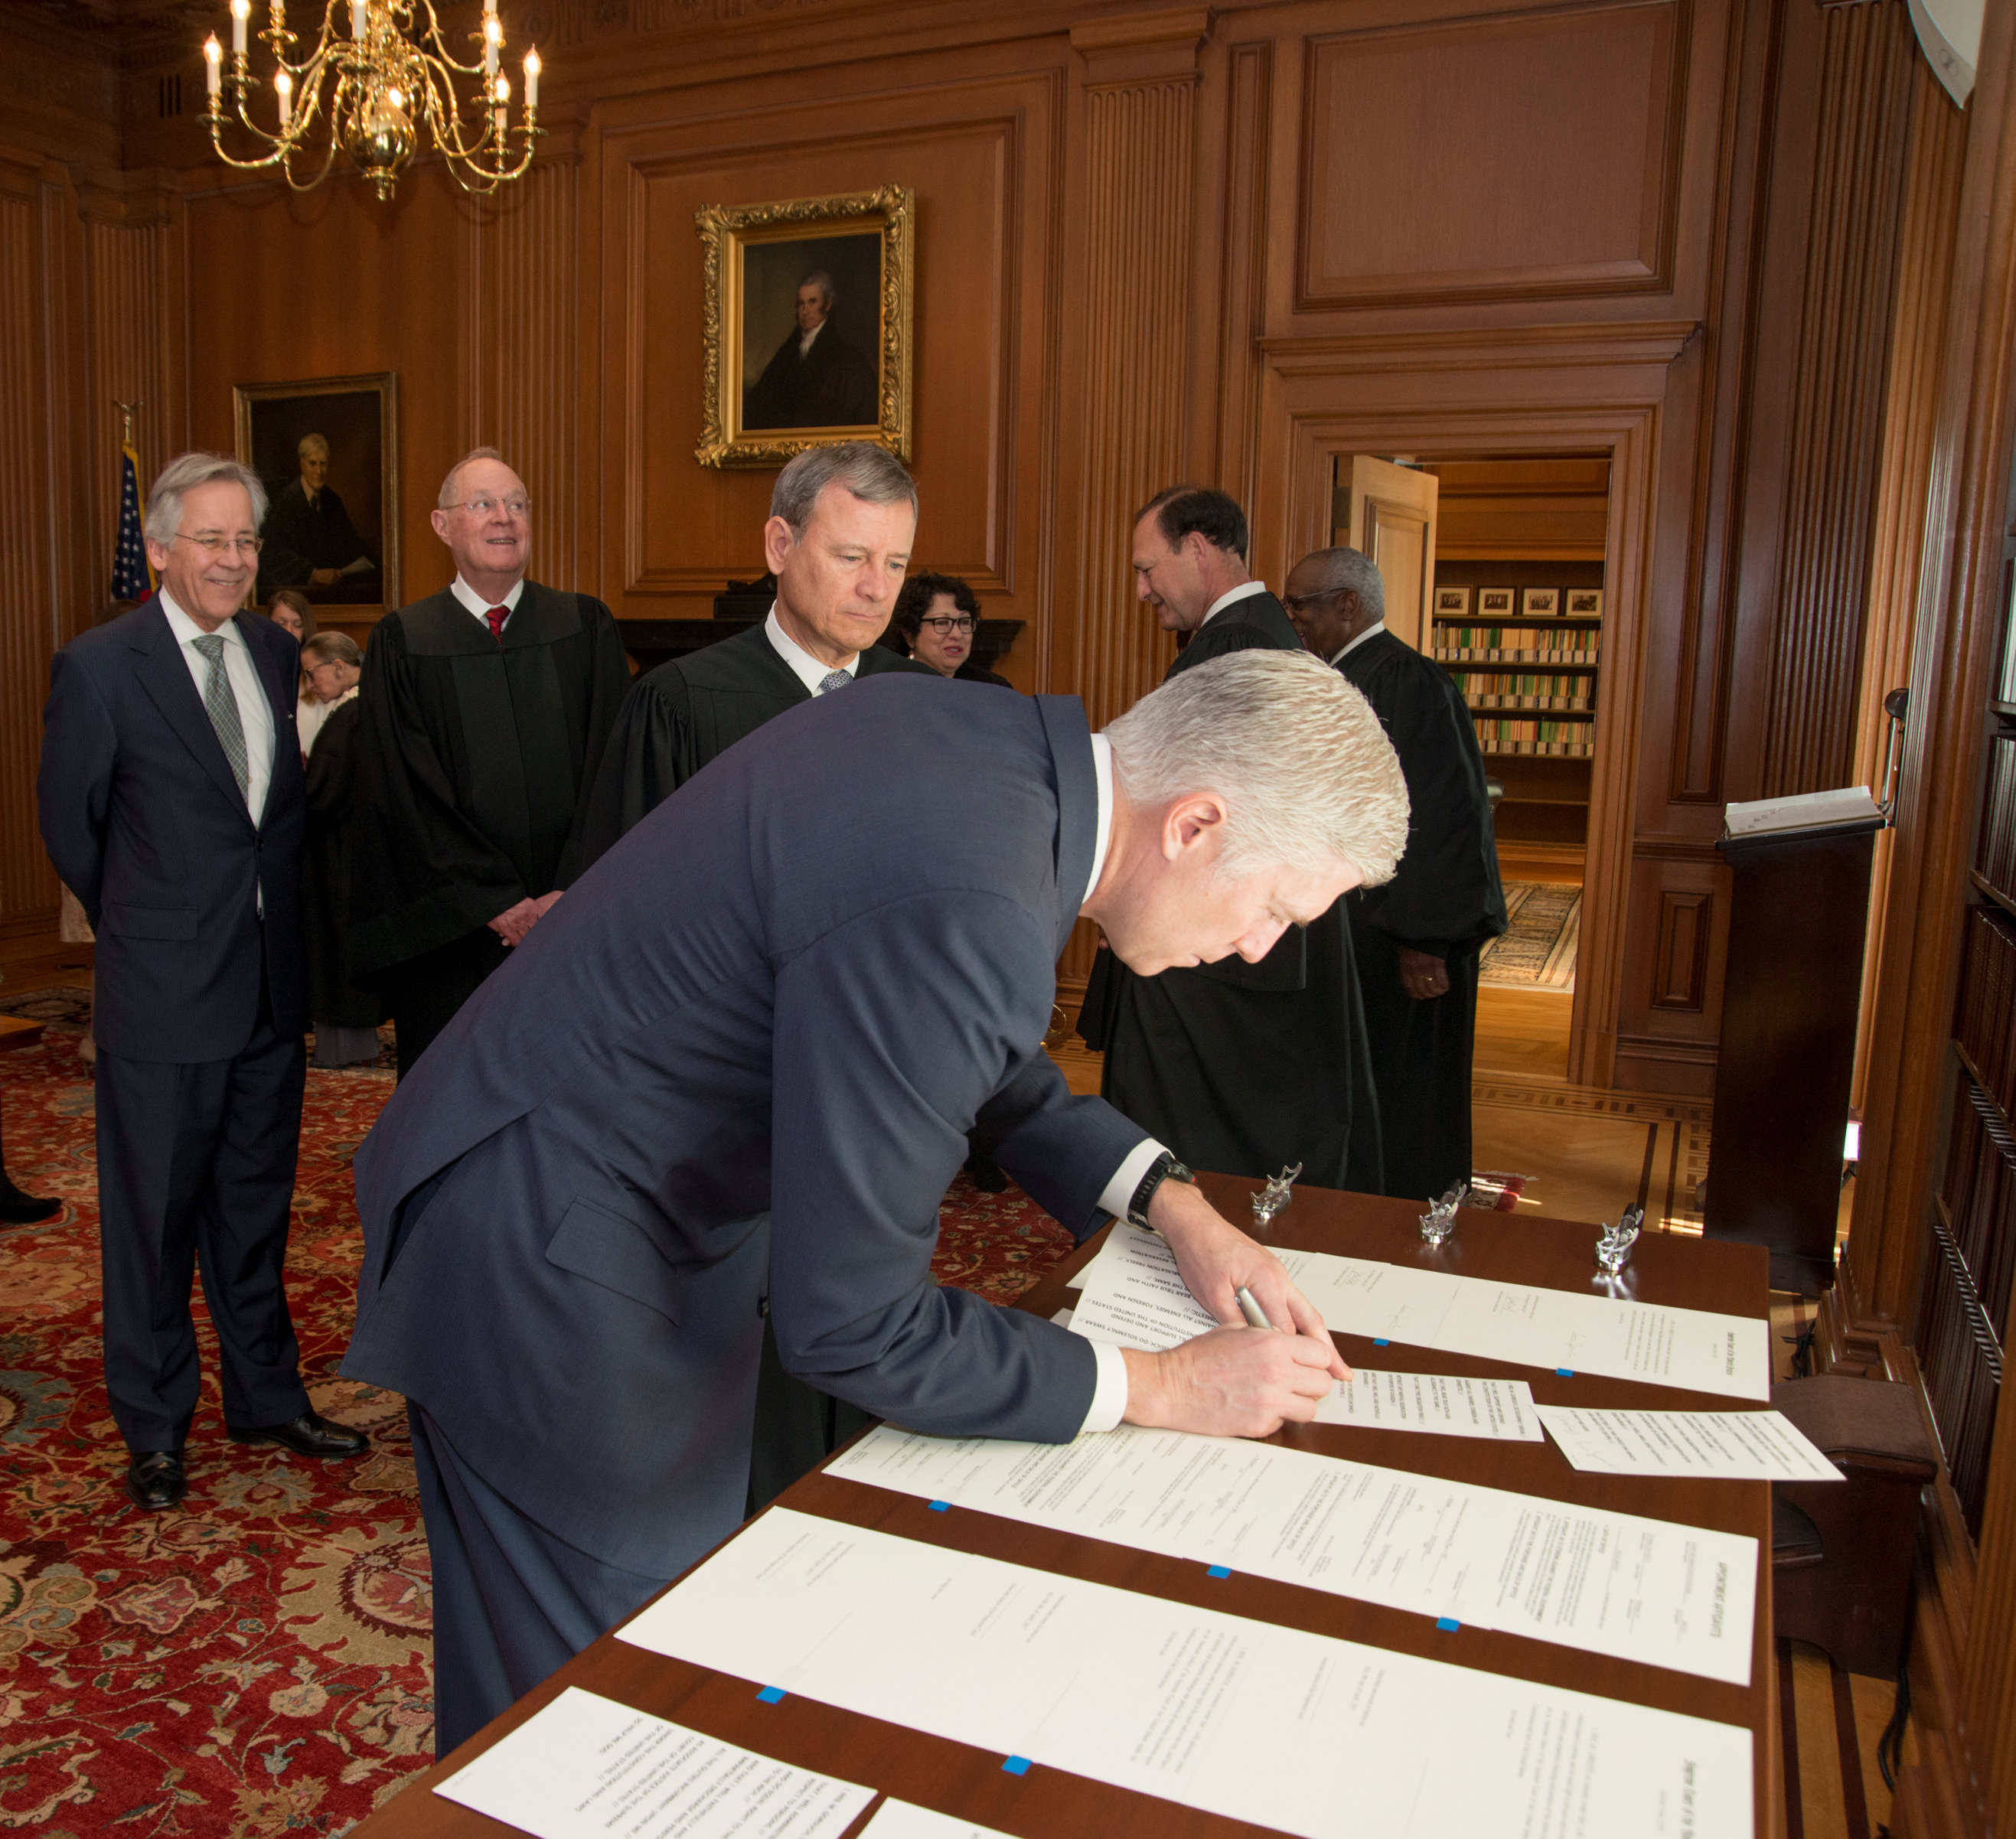 Chief Justice of the United States John Roberts (C) looks on as Judge Neil Gorsuch (R) signs the constitutional oath during swearing-in ceremony at the Supreme Court in Washington on April 10, 2017. (Courtesy Supreme Court of the United States/Handout via REUTERS)